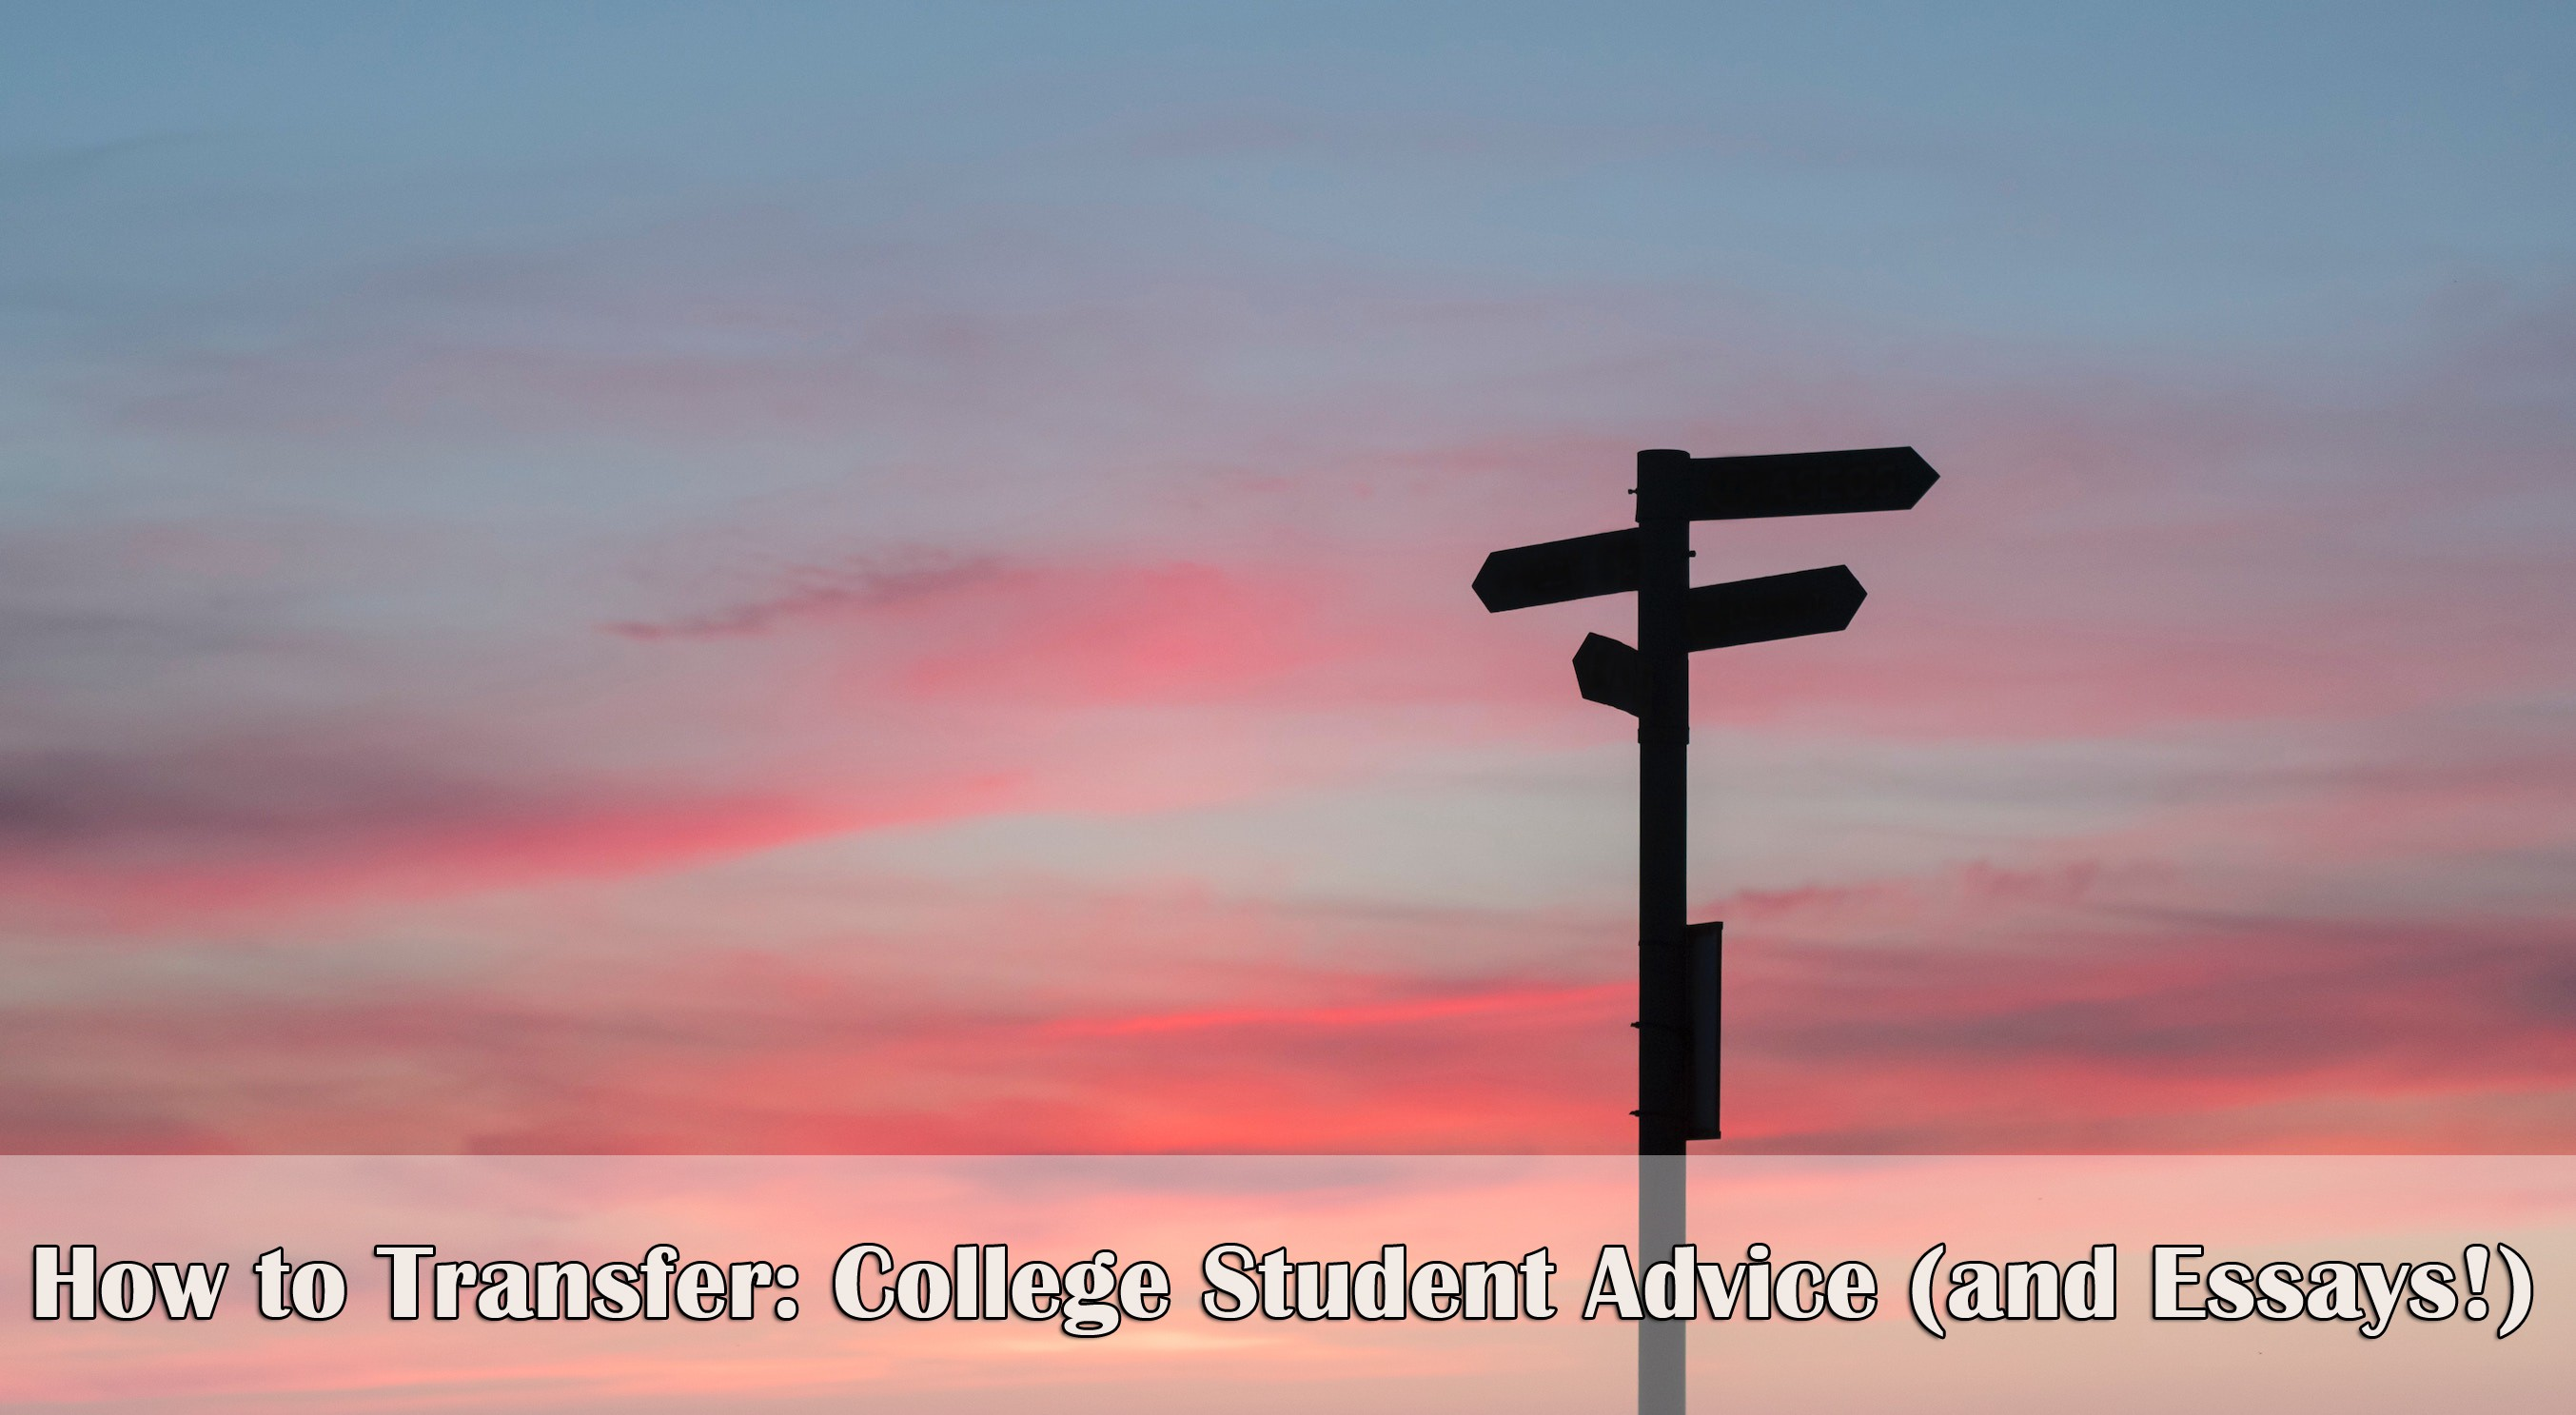 How to Transfer Colleges: Advice from Transfer Students (including transfer essays!)